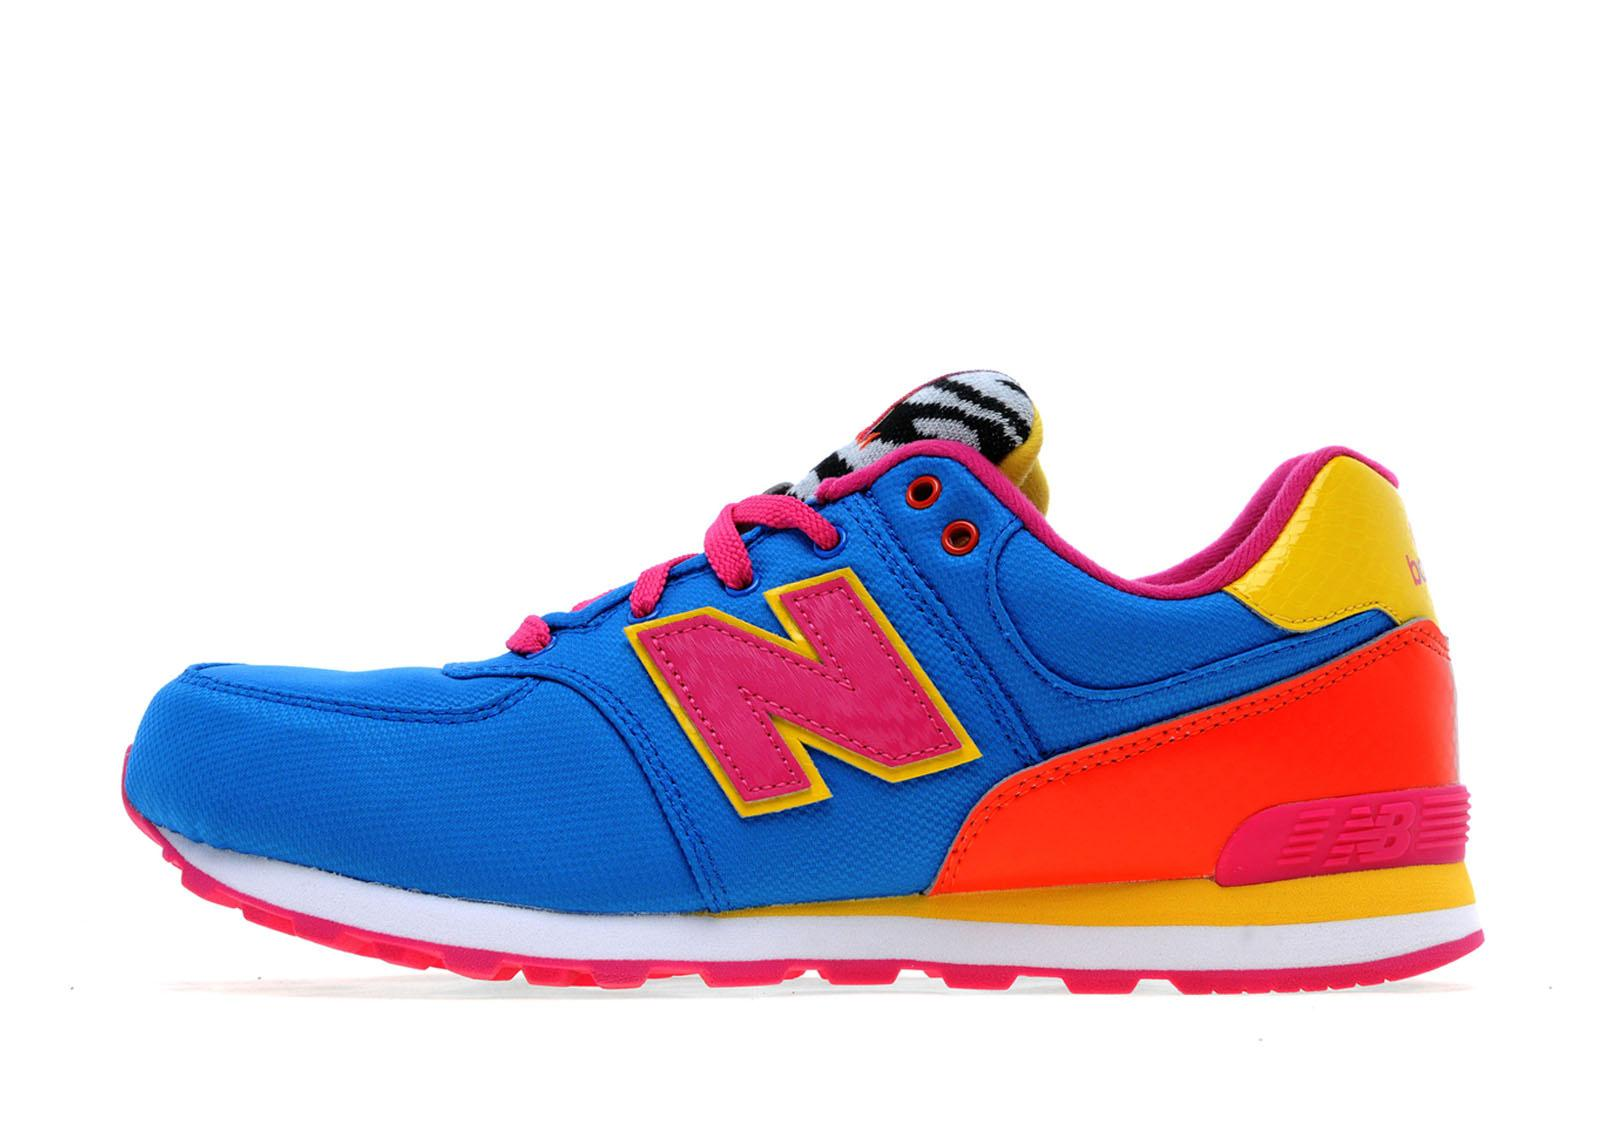 new balance 574 2013 chevy